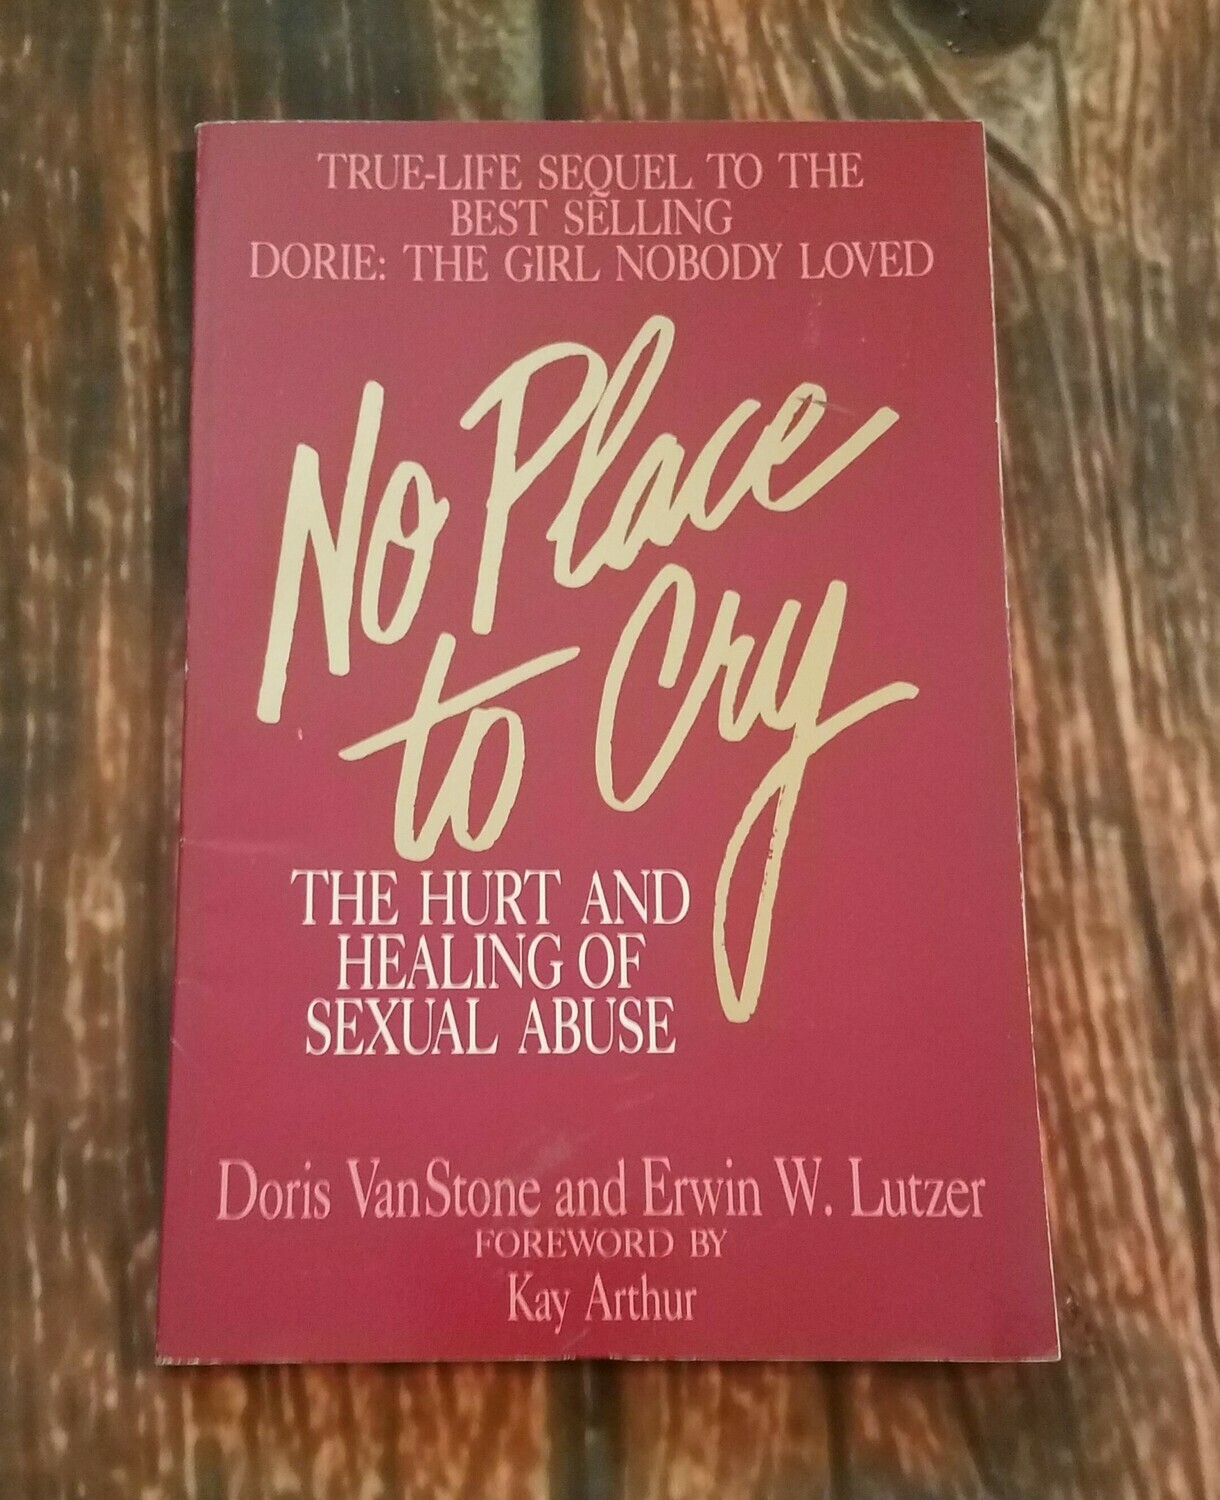 No Place to Cry: the Hurt and Healing of Sexual Abuse by Doris VanStone and Erwin W. Lutzer